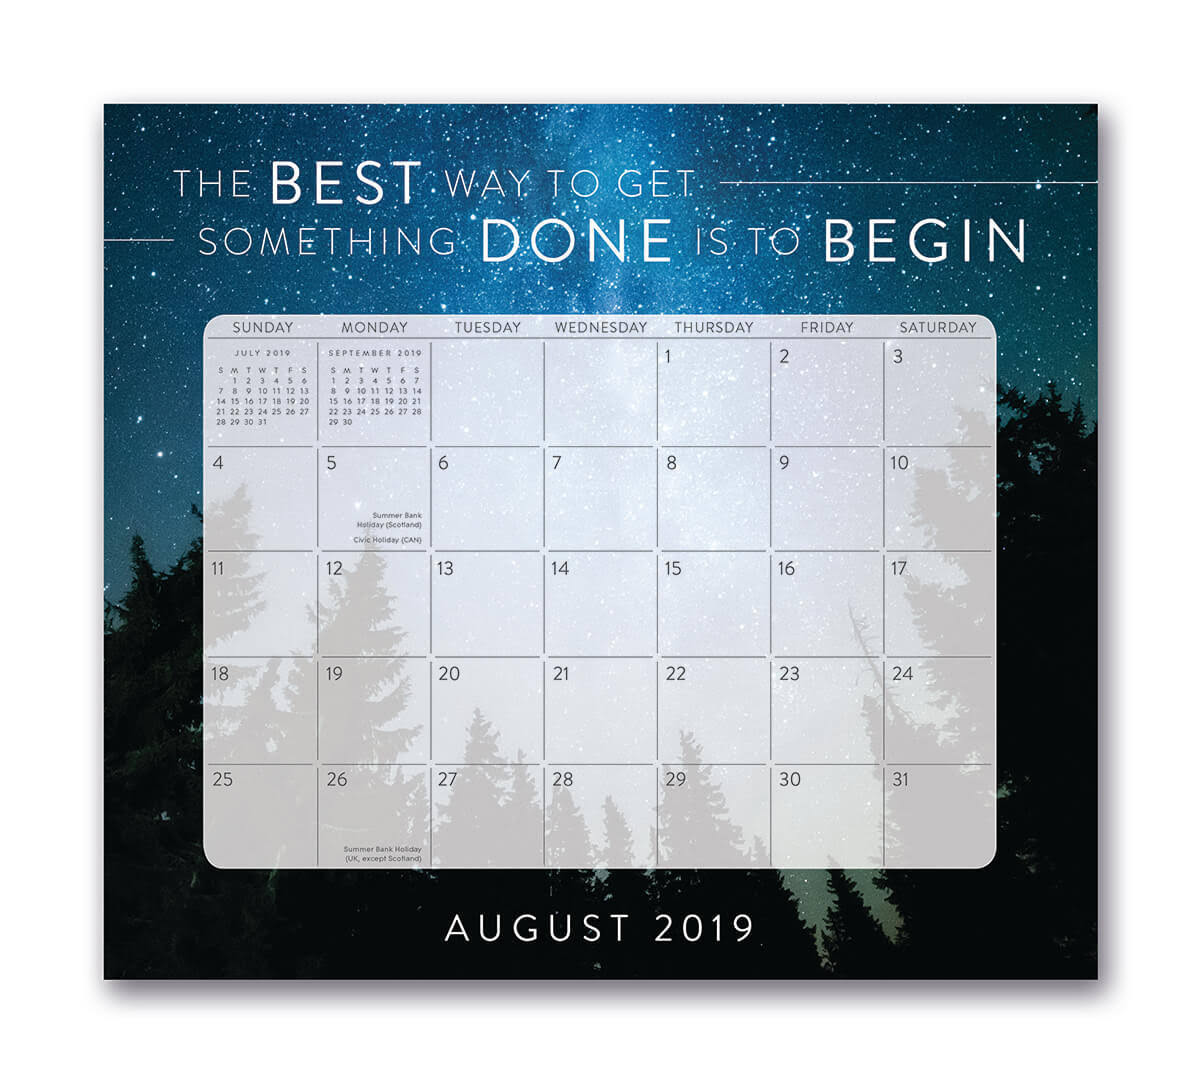 Orange Circle Studio 2020 Magnetic Monthly Calendar Pad, August 2019 - December 2020, Words to Live by